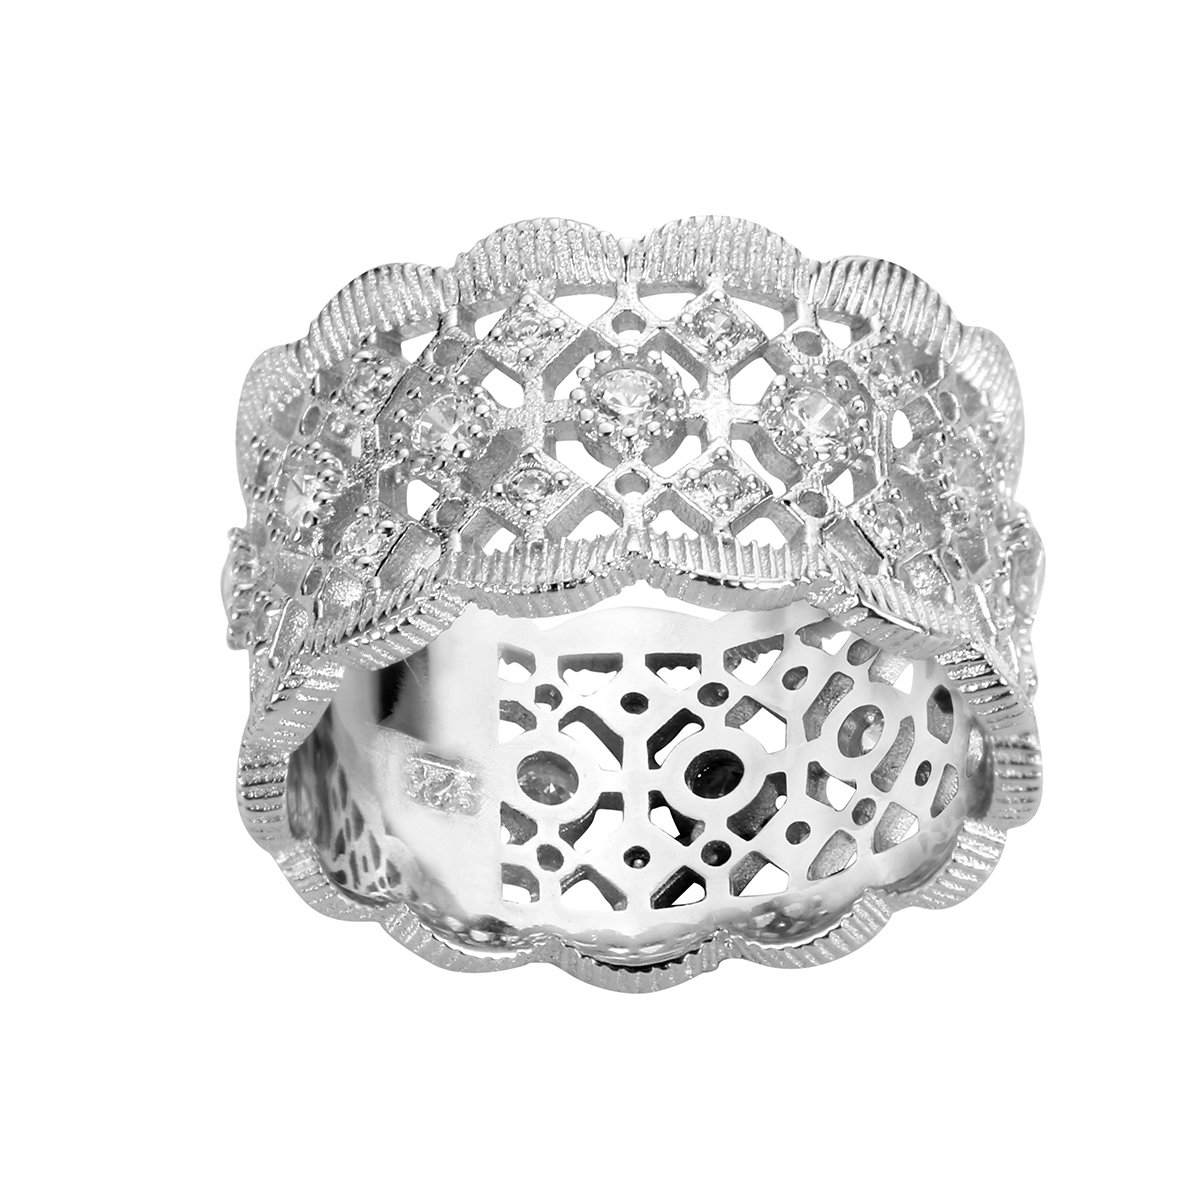 CloseoutWarehouse Cubic Zirconia Filigree Ring Sterling Silver Size 15